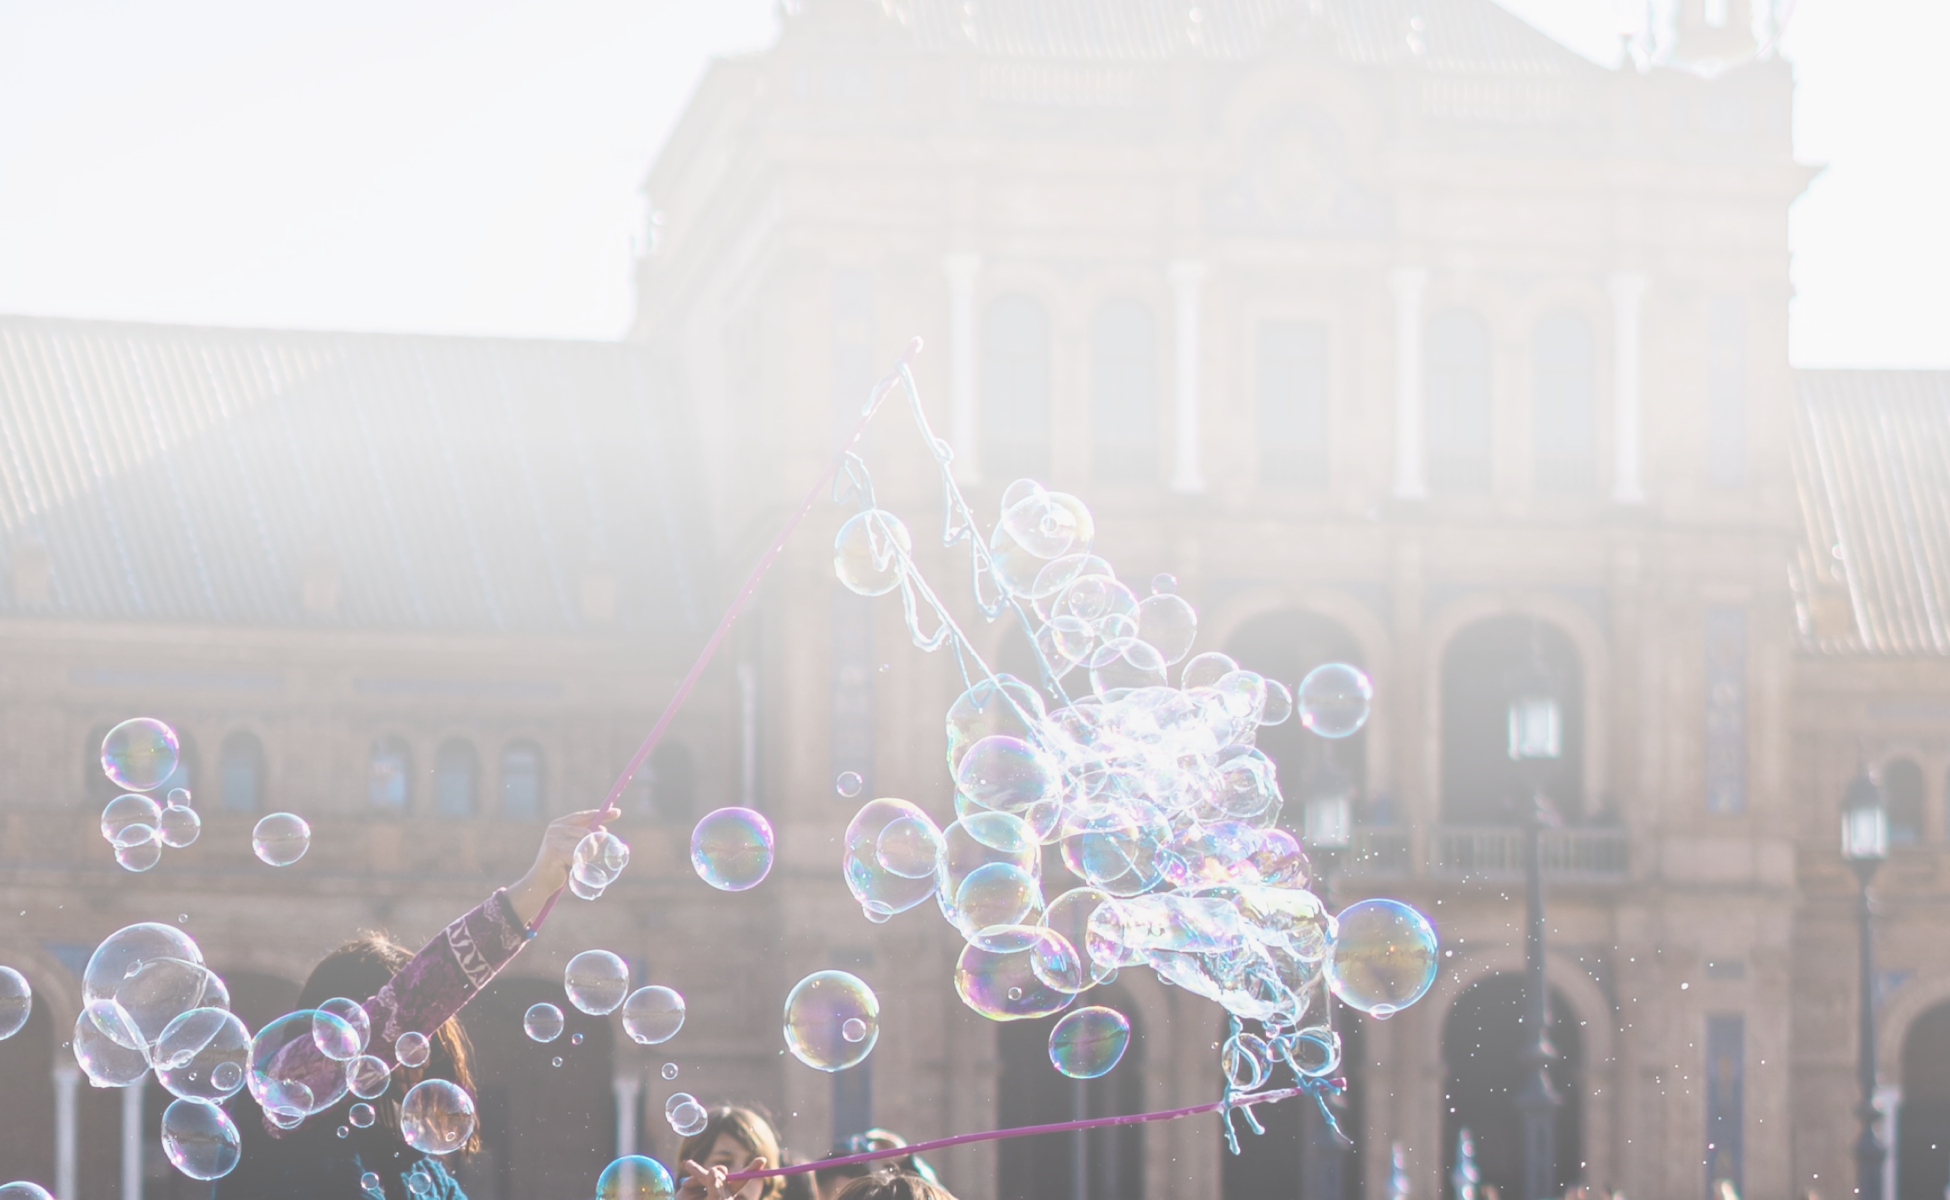 A man blows bubbles for a group of children in a city square